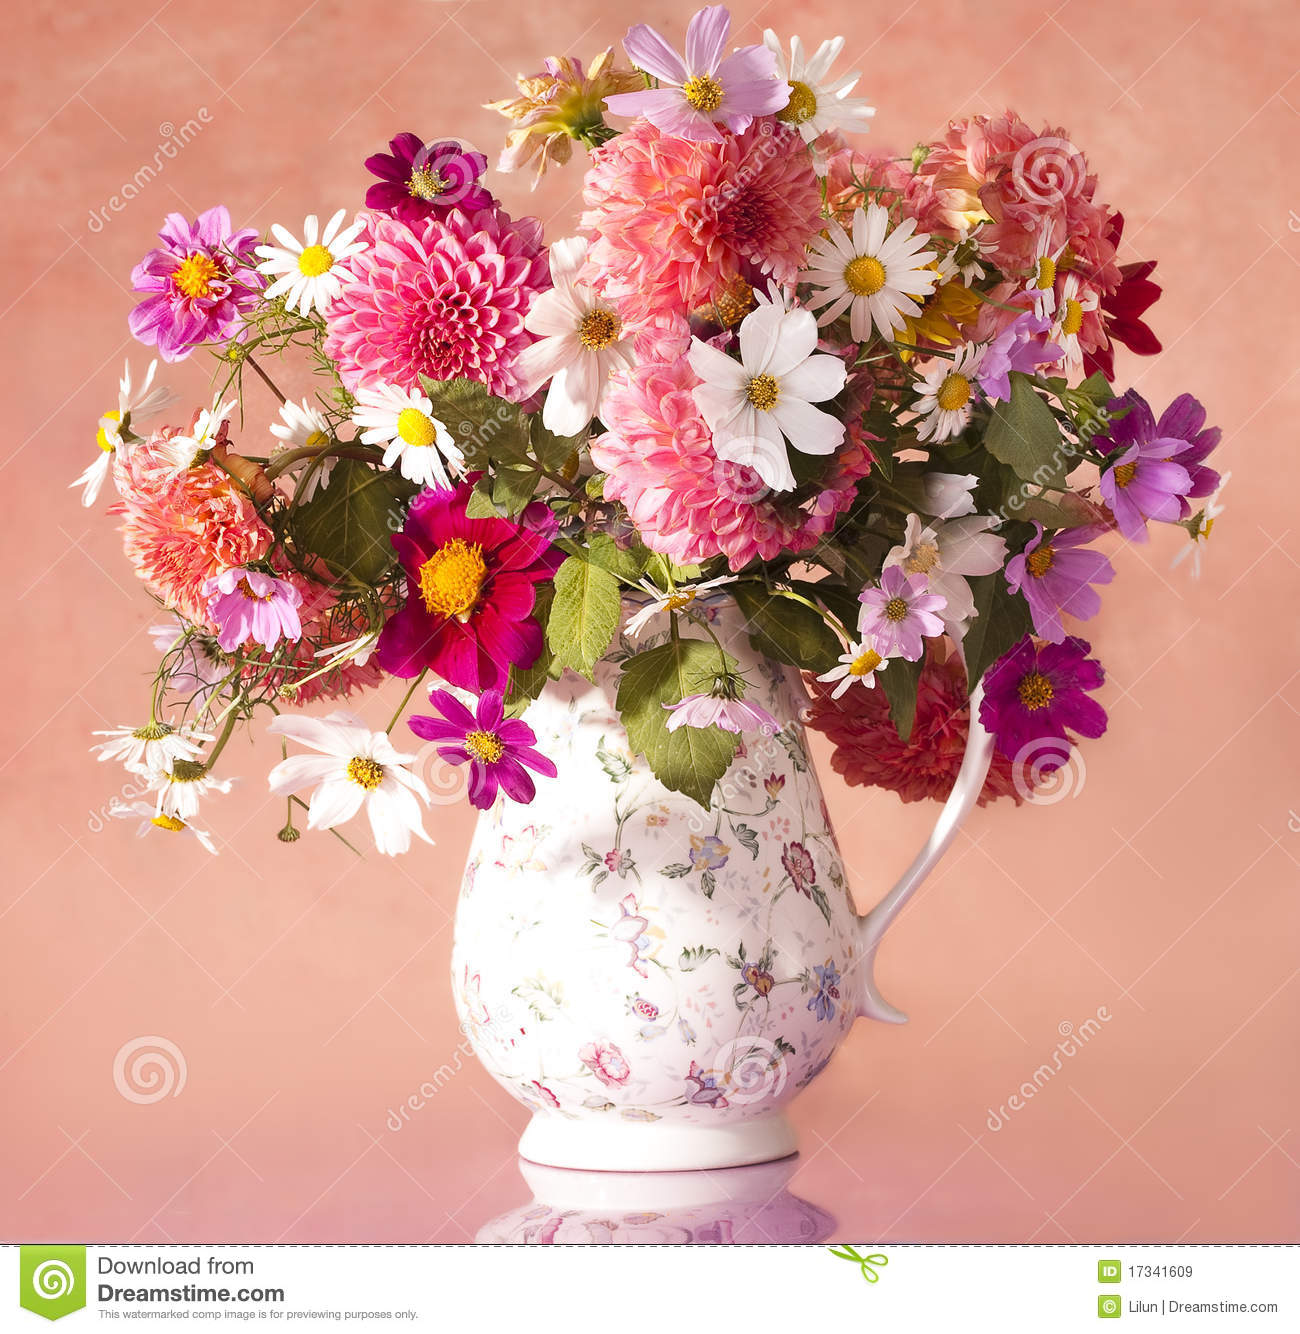 Bunch flowers images free clip transparent stock Cartoon Bunch Flowers Stock Photos, Images, & Pictures - 754 Images clip transparent stock